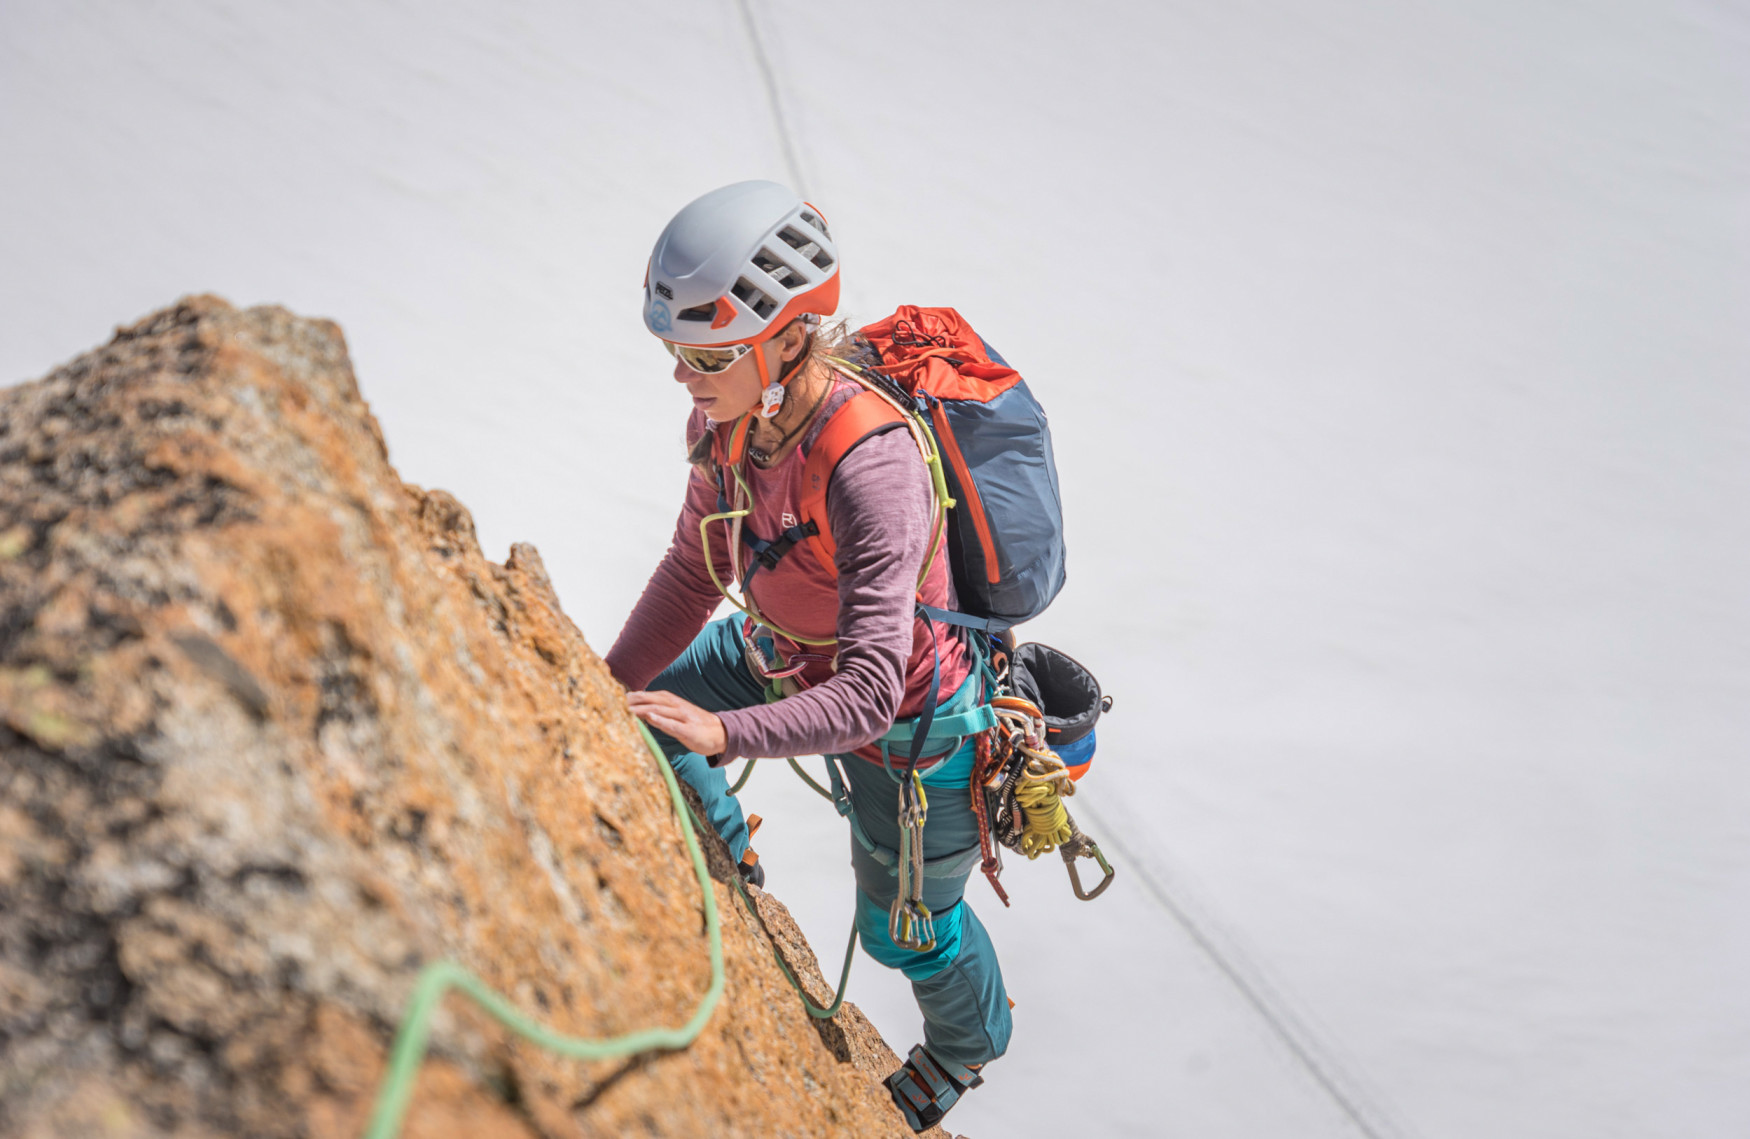 Climbing is a fascinating sport that is attracting more and more female athletes. LOWA's SPARROW Ws is a climbing shoe developed especially for women, a shoe that meets the anatomic requirements of women's feet. You can easily adjust this performance shoe to your needs using its three Velcro straps that run in opposing directions. It is also a true lightweight, at about 270 grams per shoe. This feature makes a positive impression with every step, just like the shoe's pleasant inner lining.